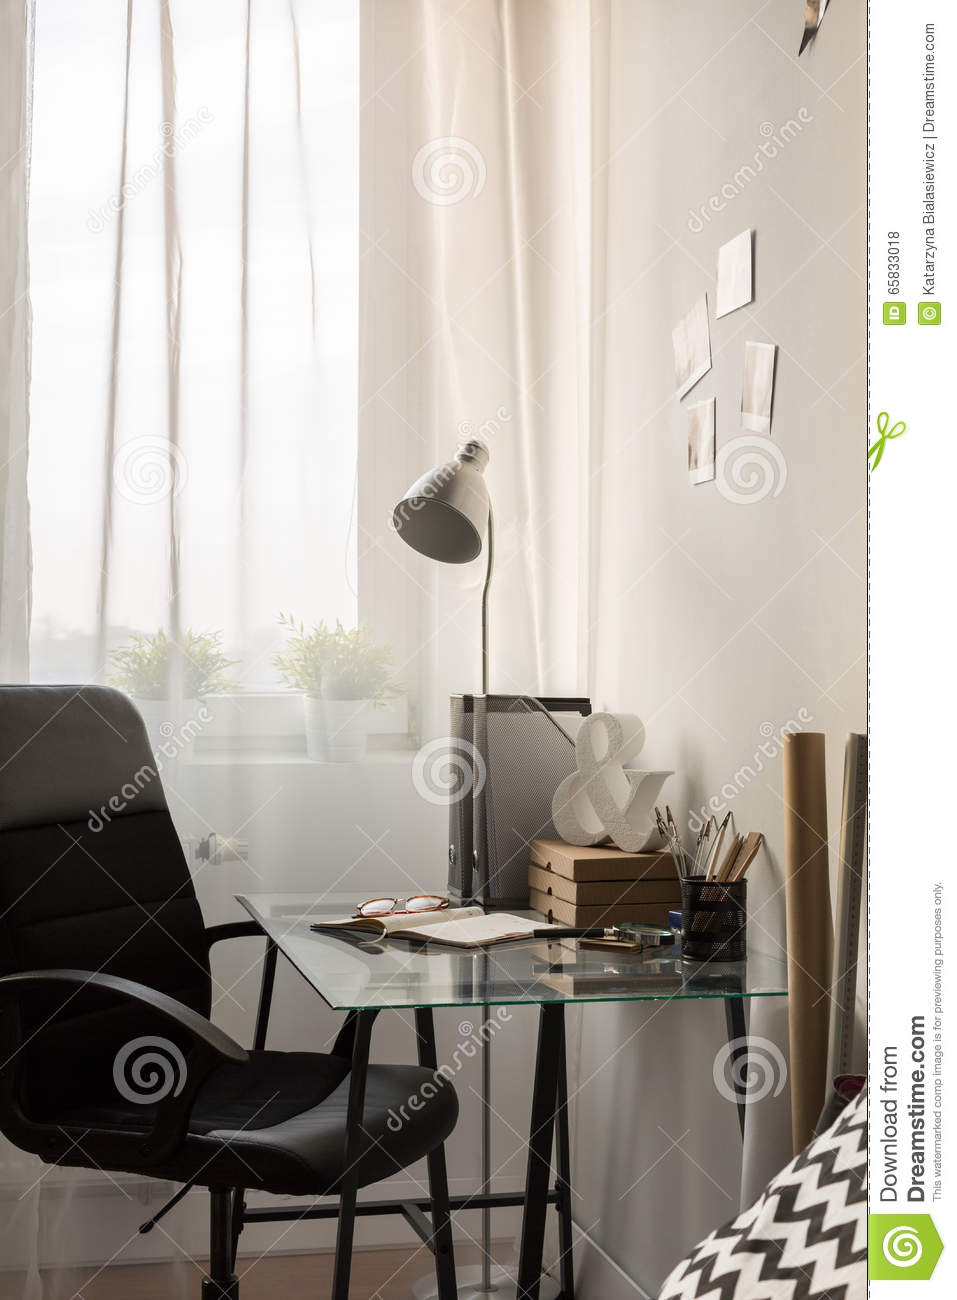 Study Room Glass: Glass Desk In Study Room Stock Photo. Image Of Business